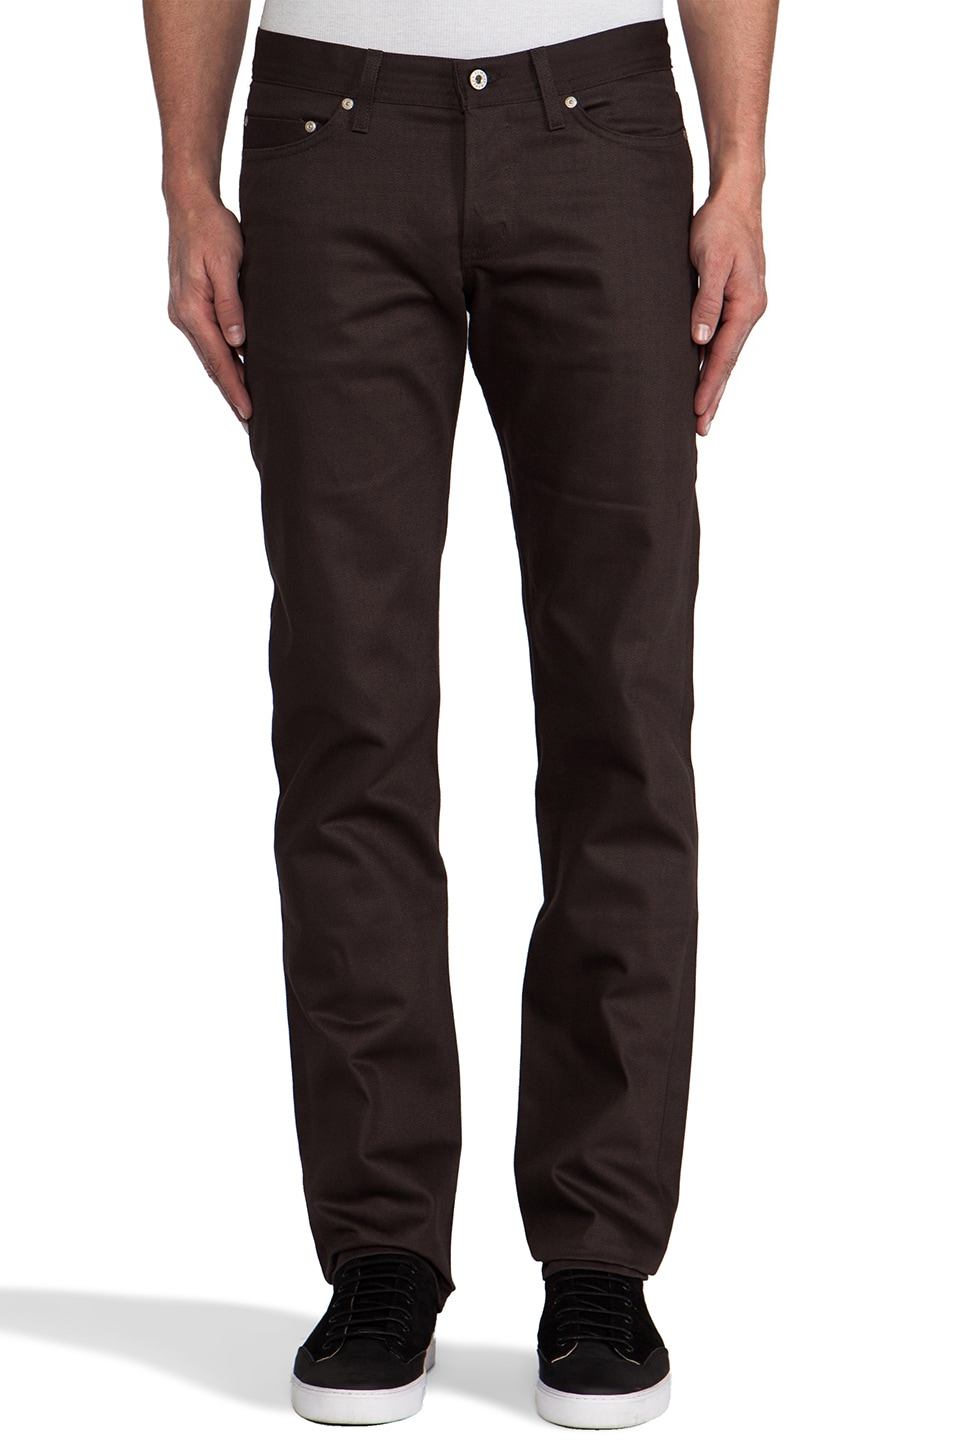 Naked & Famous Denim Weird Guy Brown Selvedge Chino 12 oz. in Brown